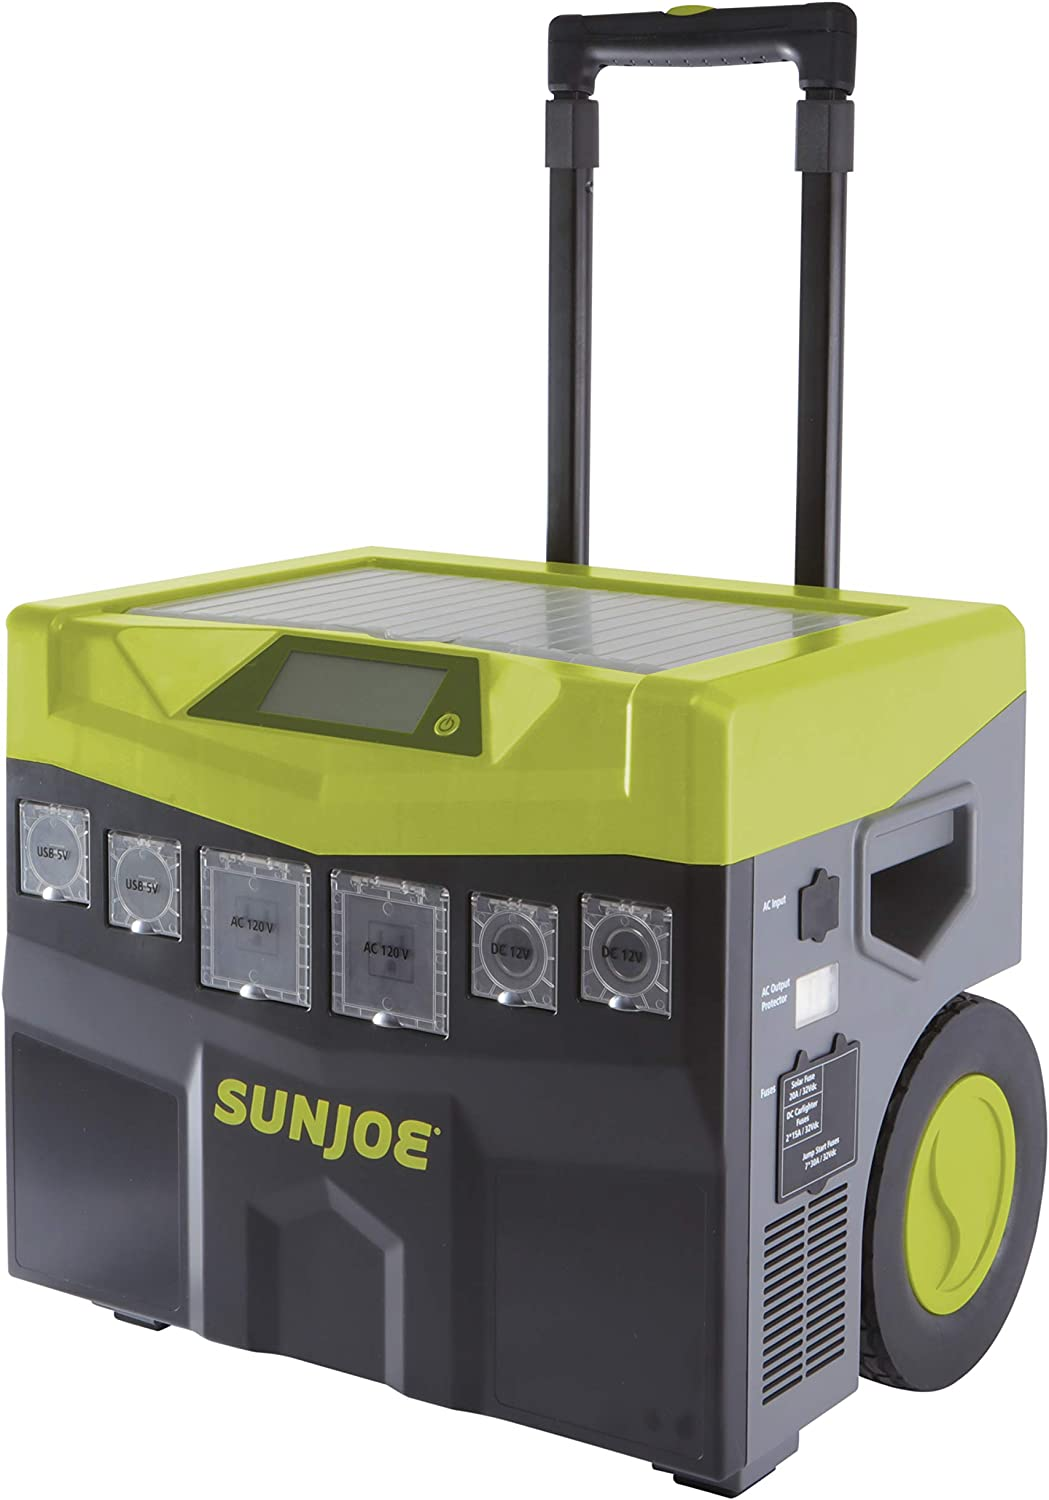 Sun Joe SJ1440SG 1440 Watt Battery Powered Portable Ind Out Inverter Generator, Green